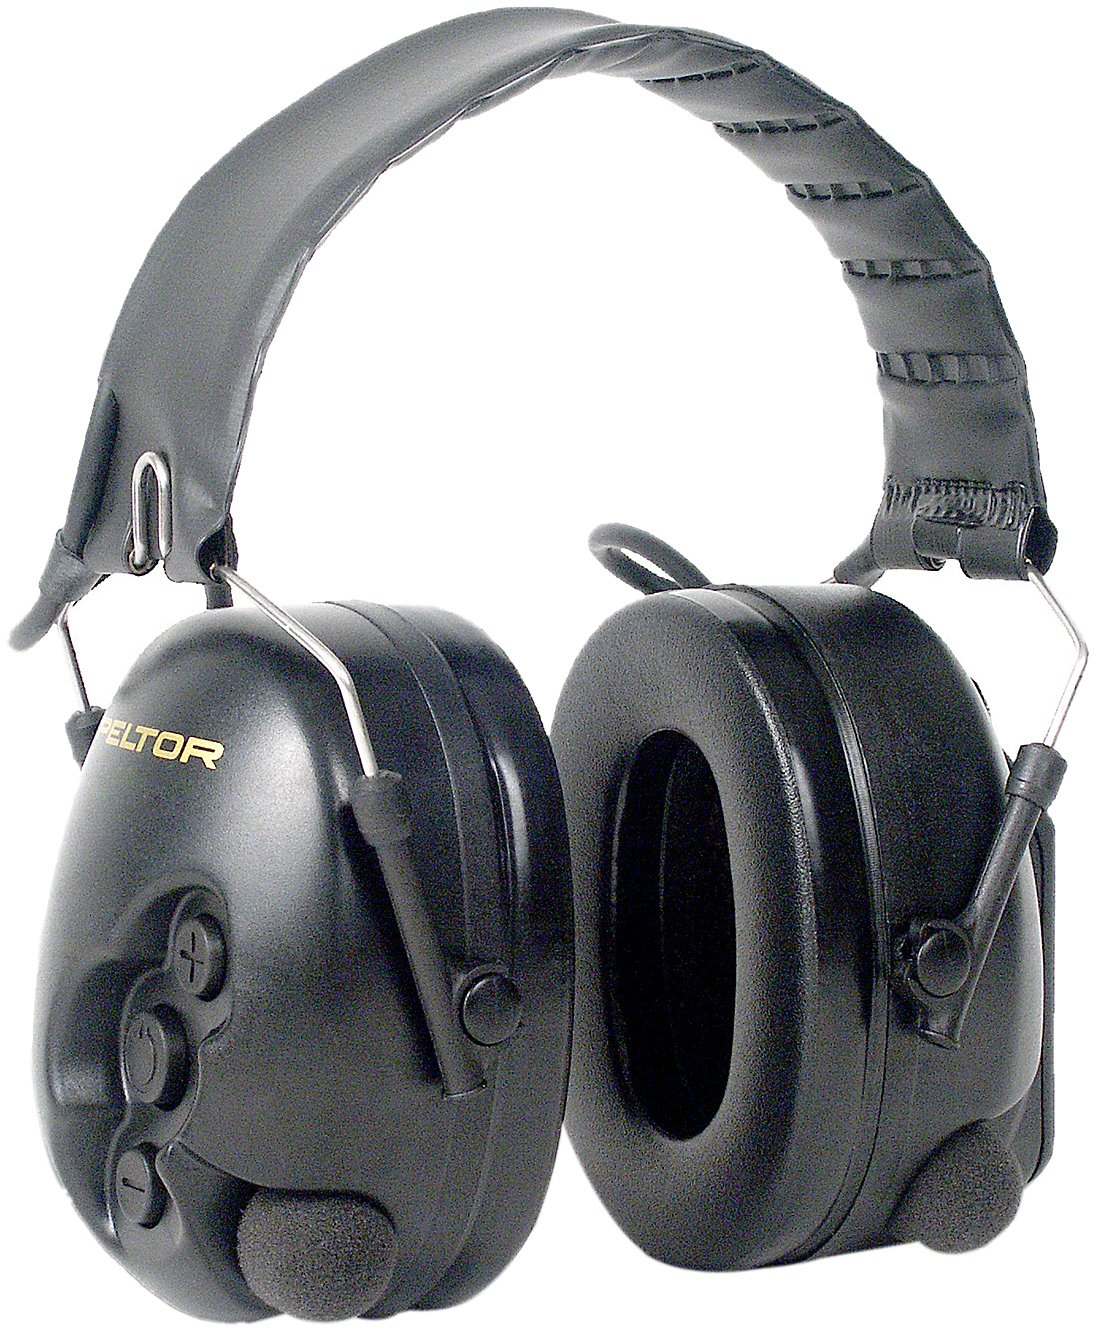 septls247h10 a – Optime 105 Earmuffs B004FCH872